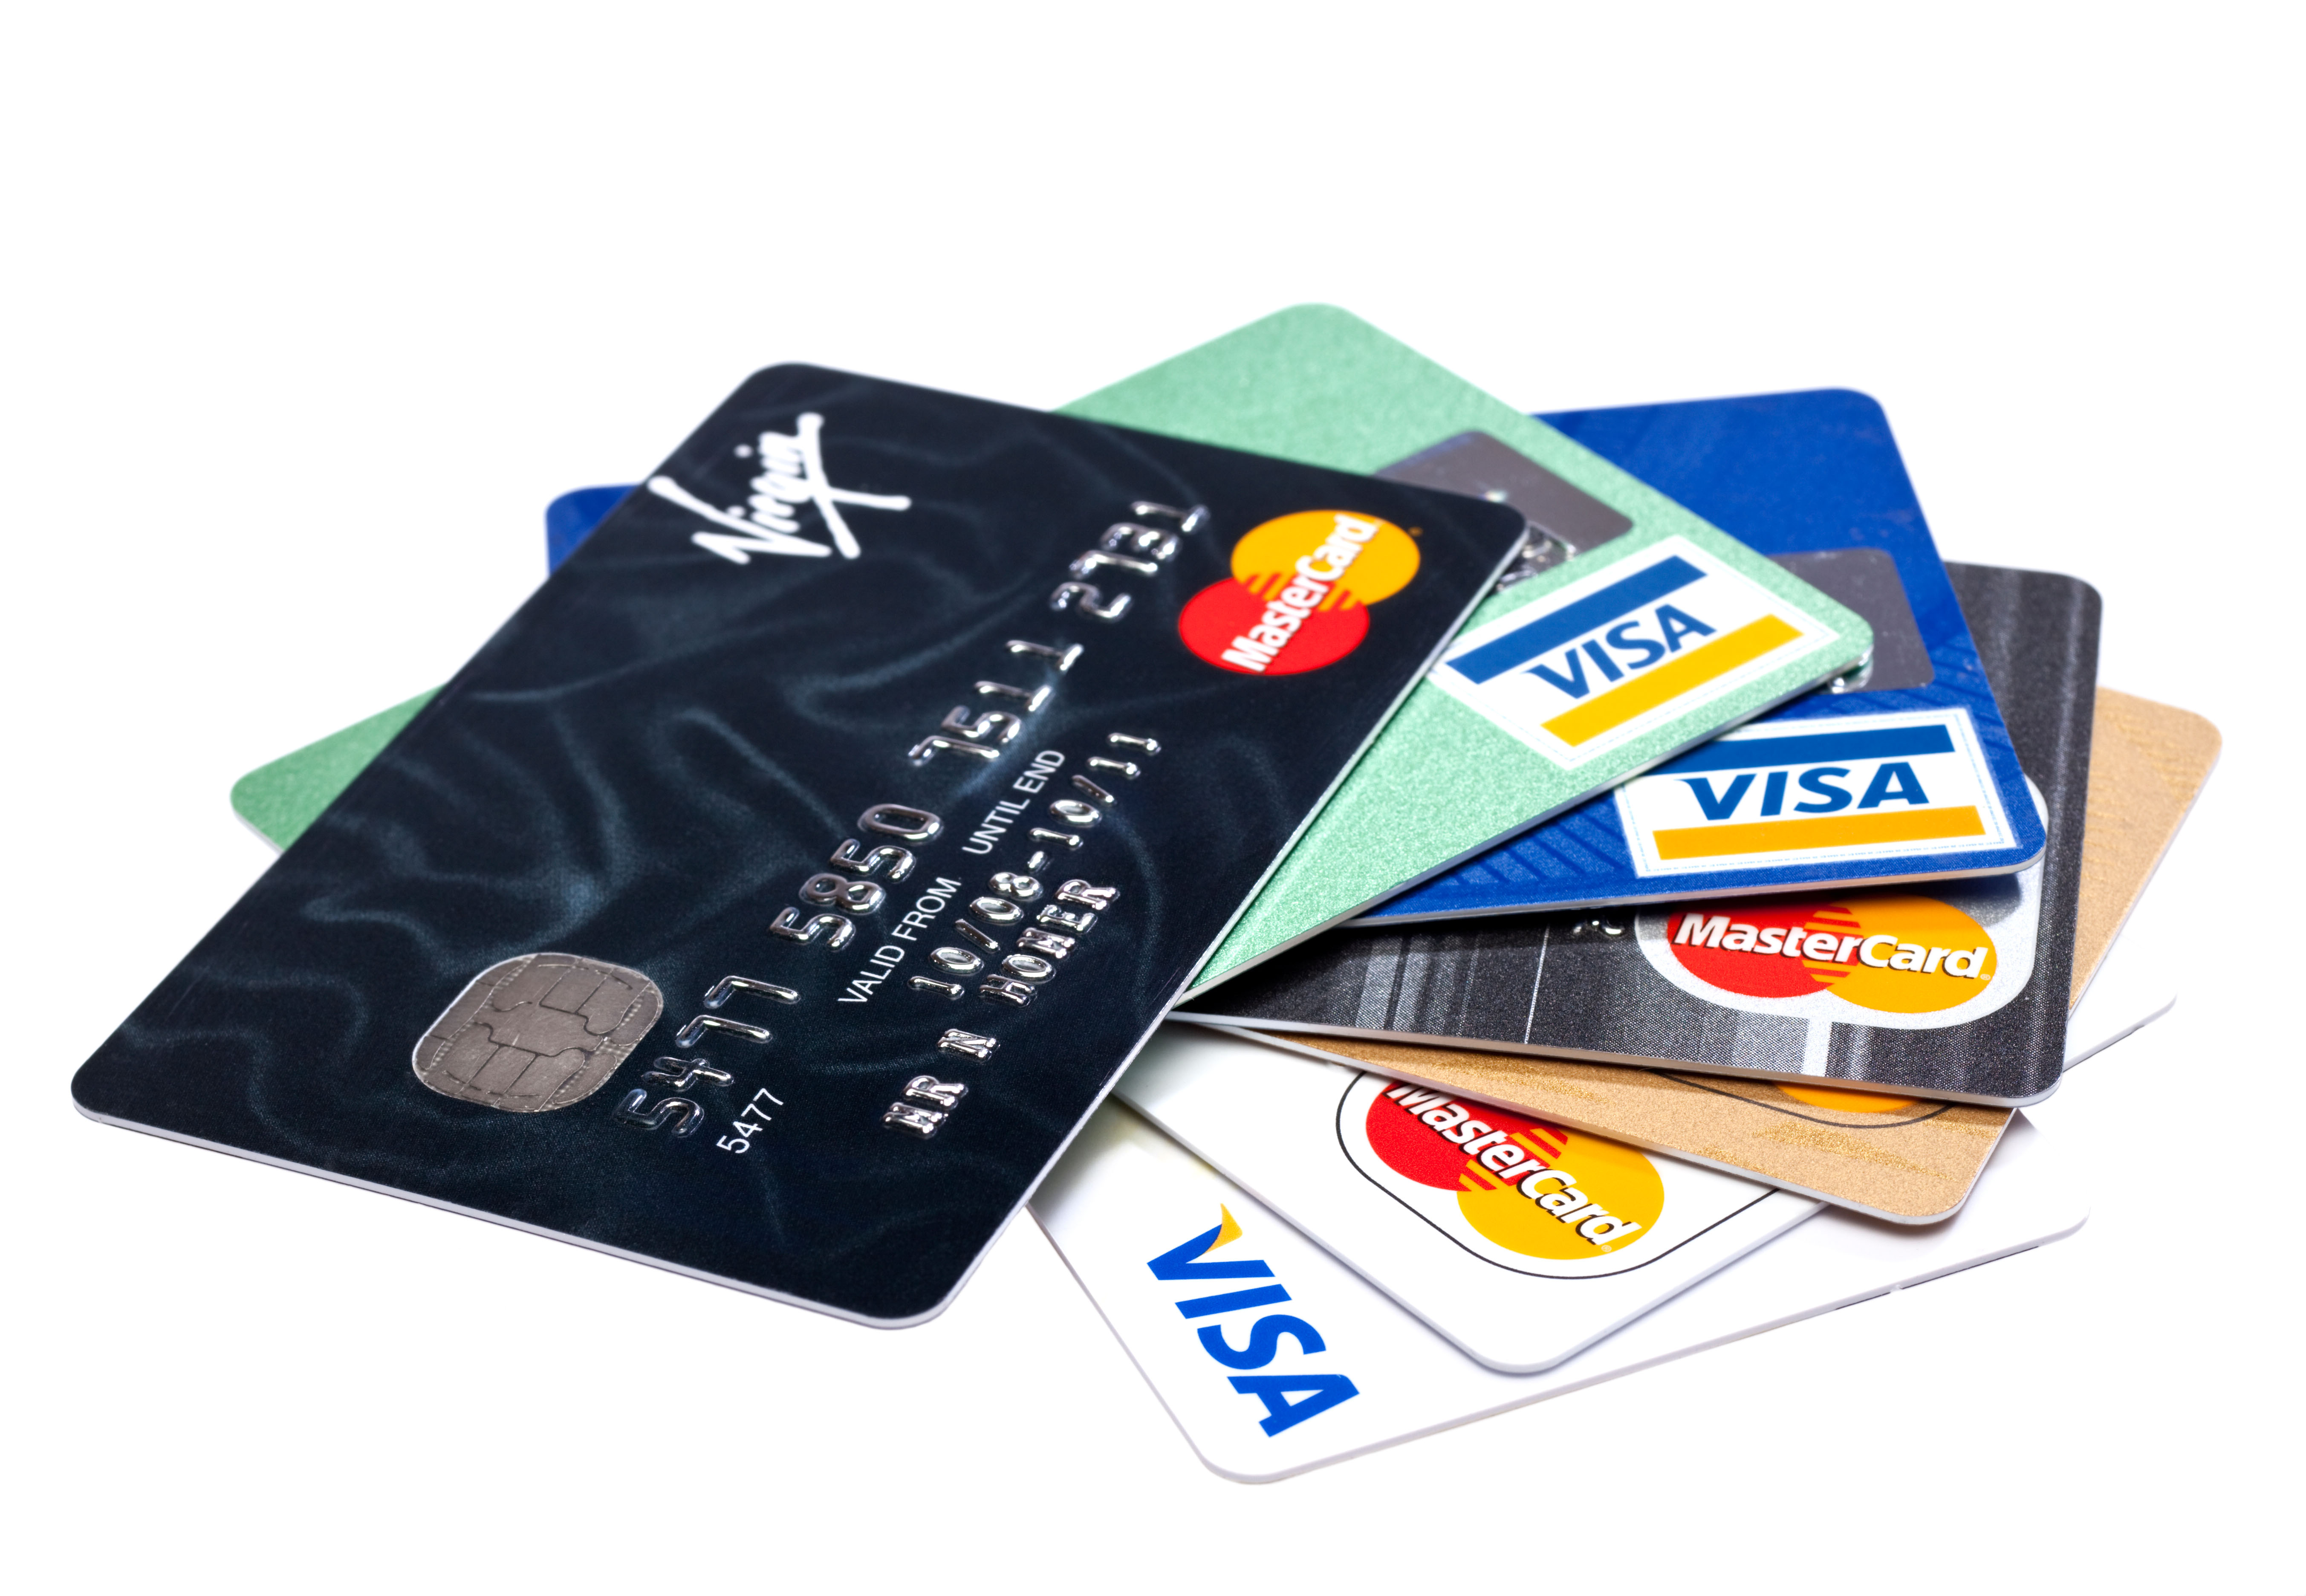 Payment holidays for loans, credit cards, car finance and pay day loans are being extended, the financial regulator has confirmed